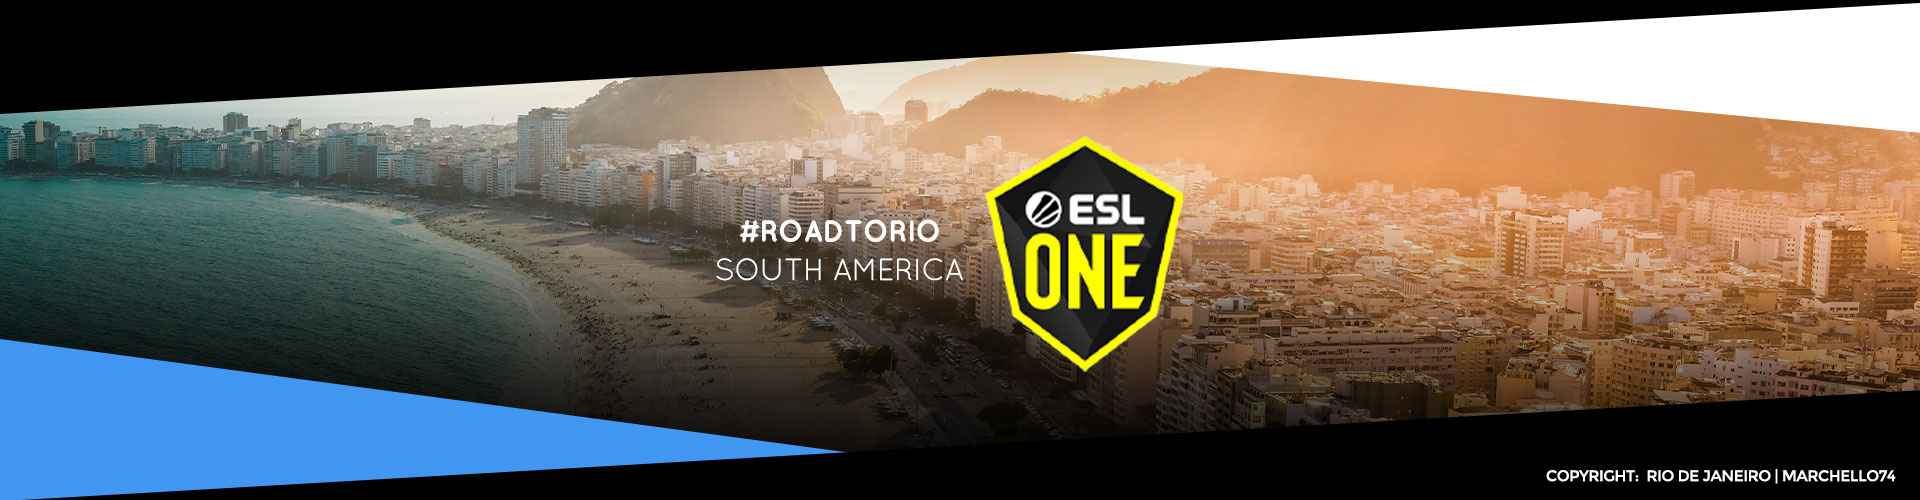 Eventsida för sydamerikanska ESL One: Road to Rio